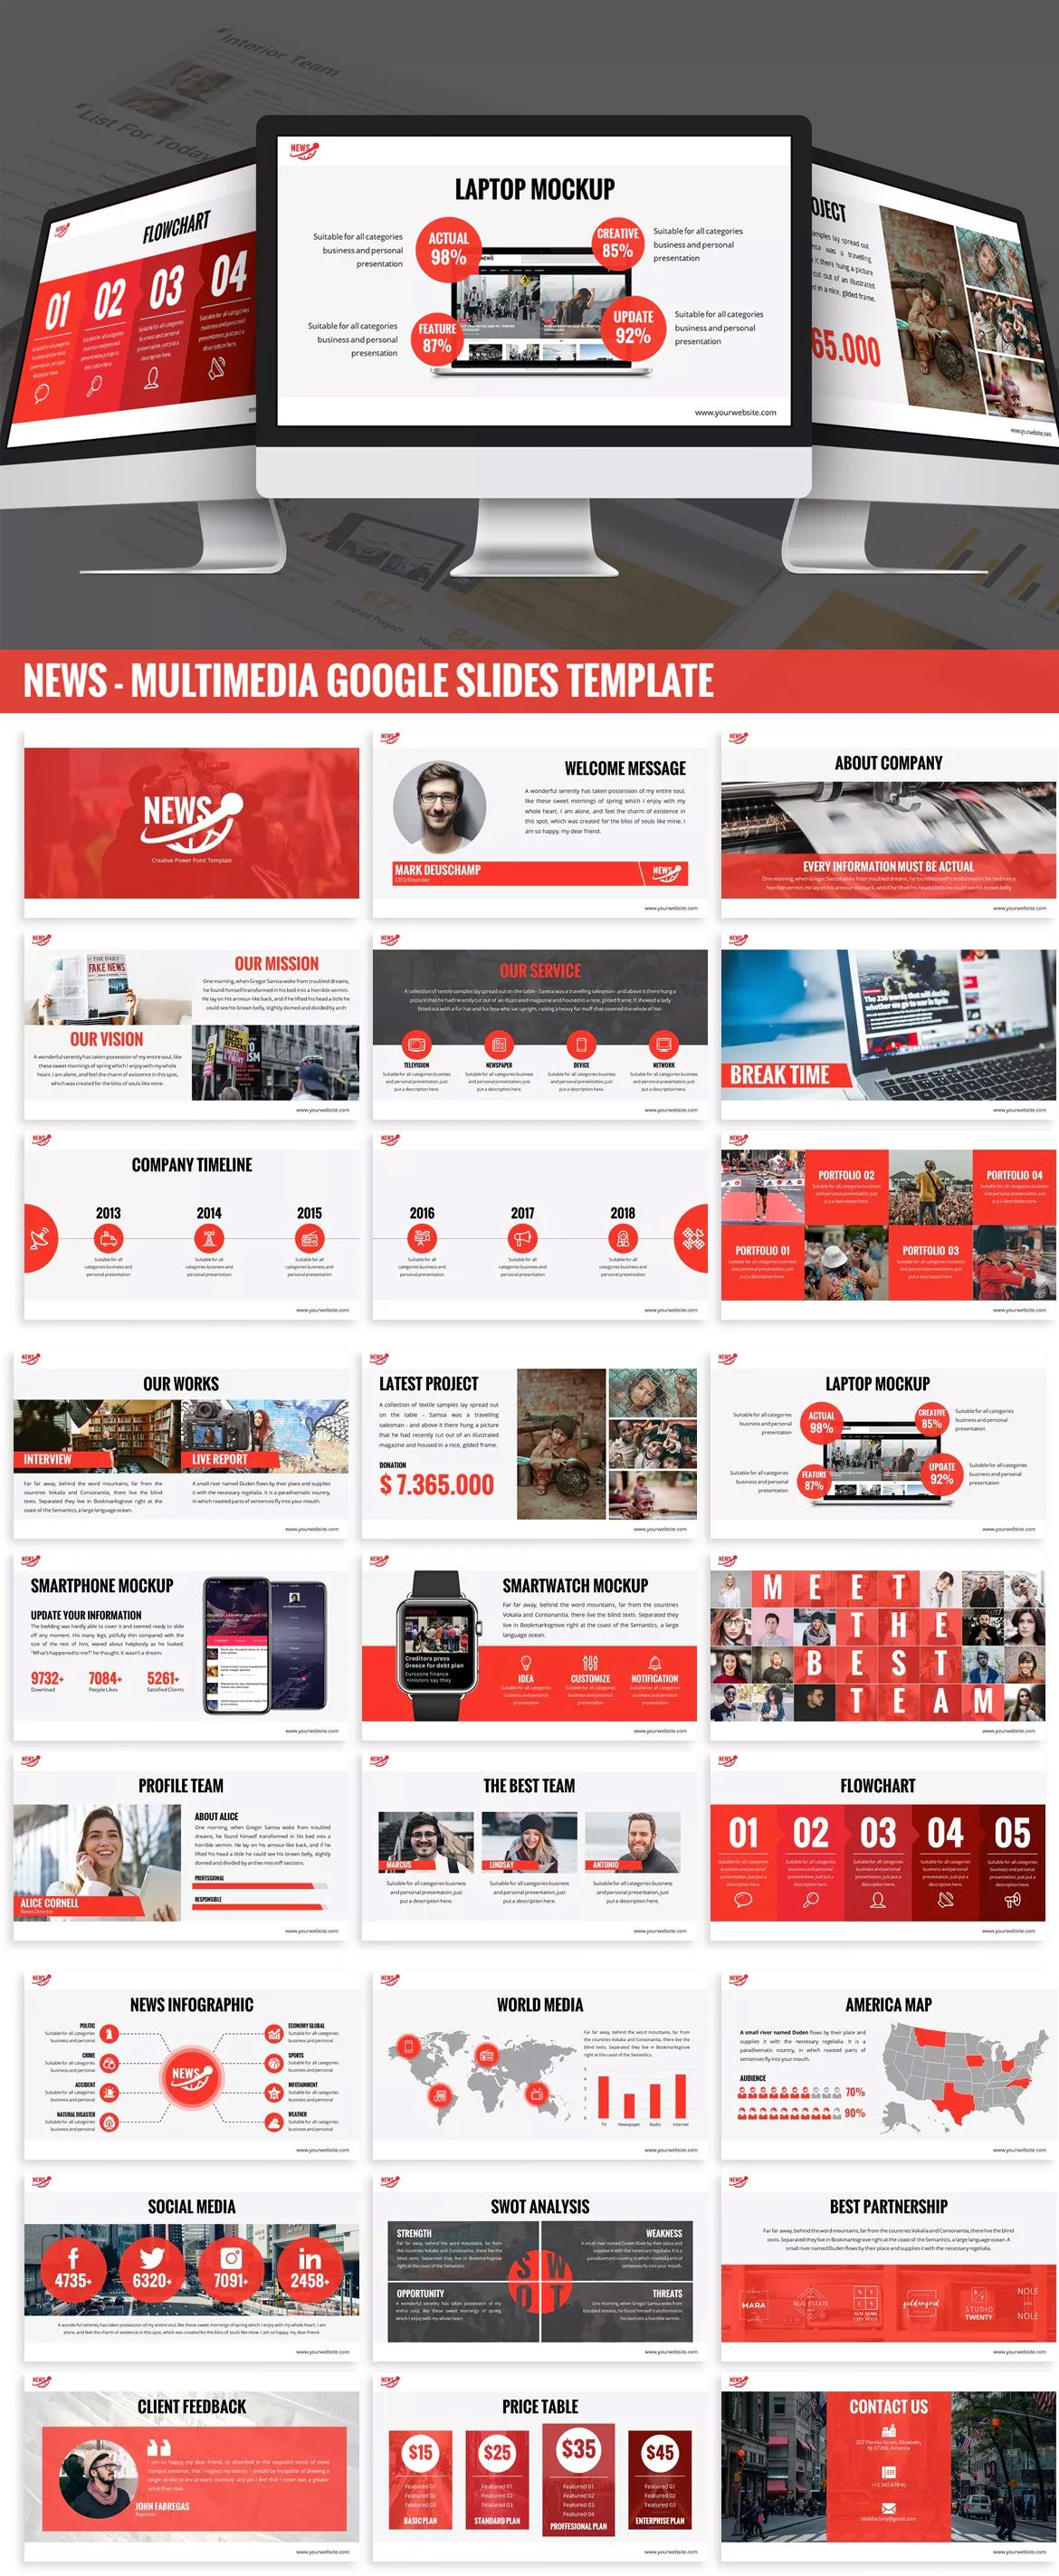 News Multimedia Google Slides Template By Slidefactory On Envato Elements Powerpoint Template Free Presentation Slides Templates Powerpoint